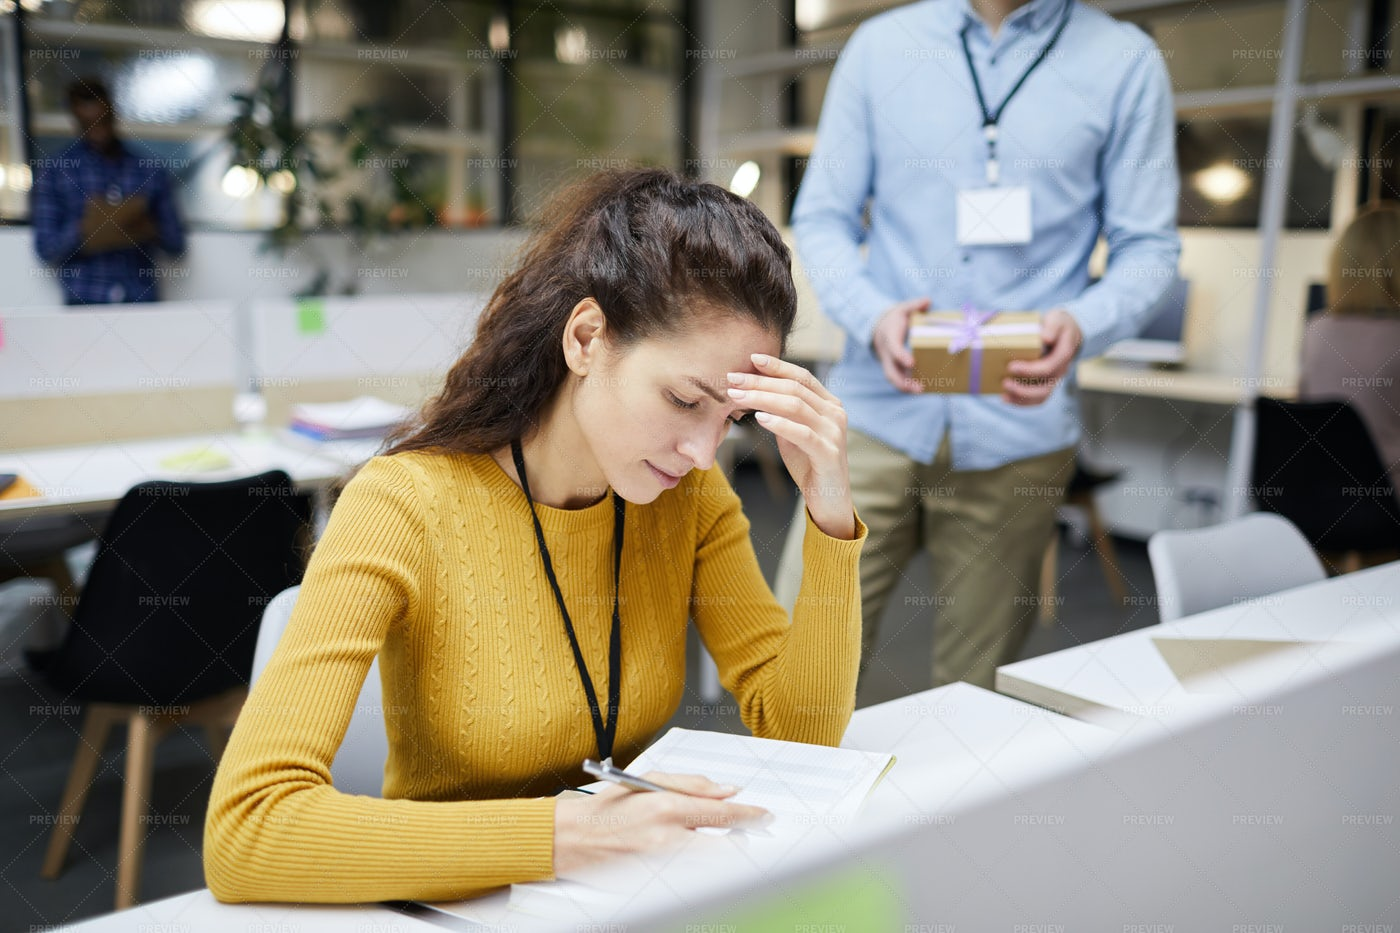 Tired From Work: Stock Photos